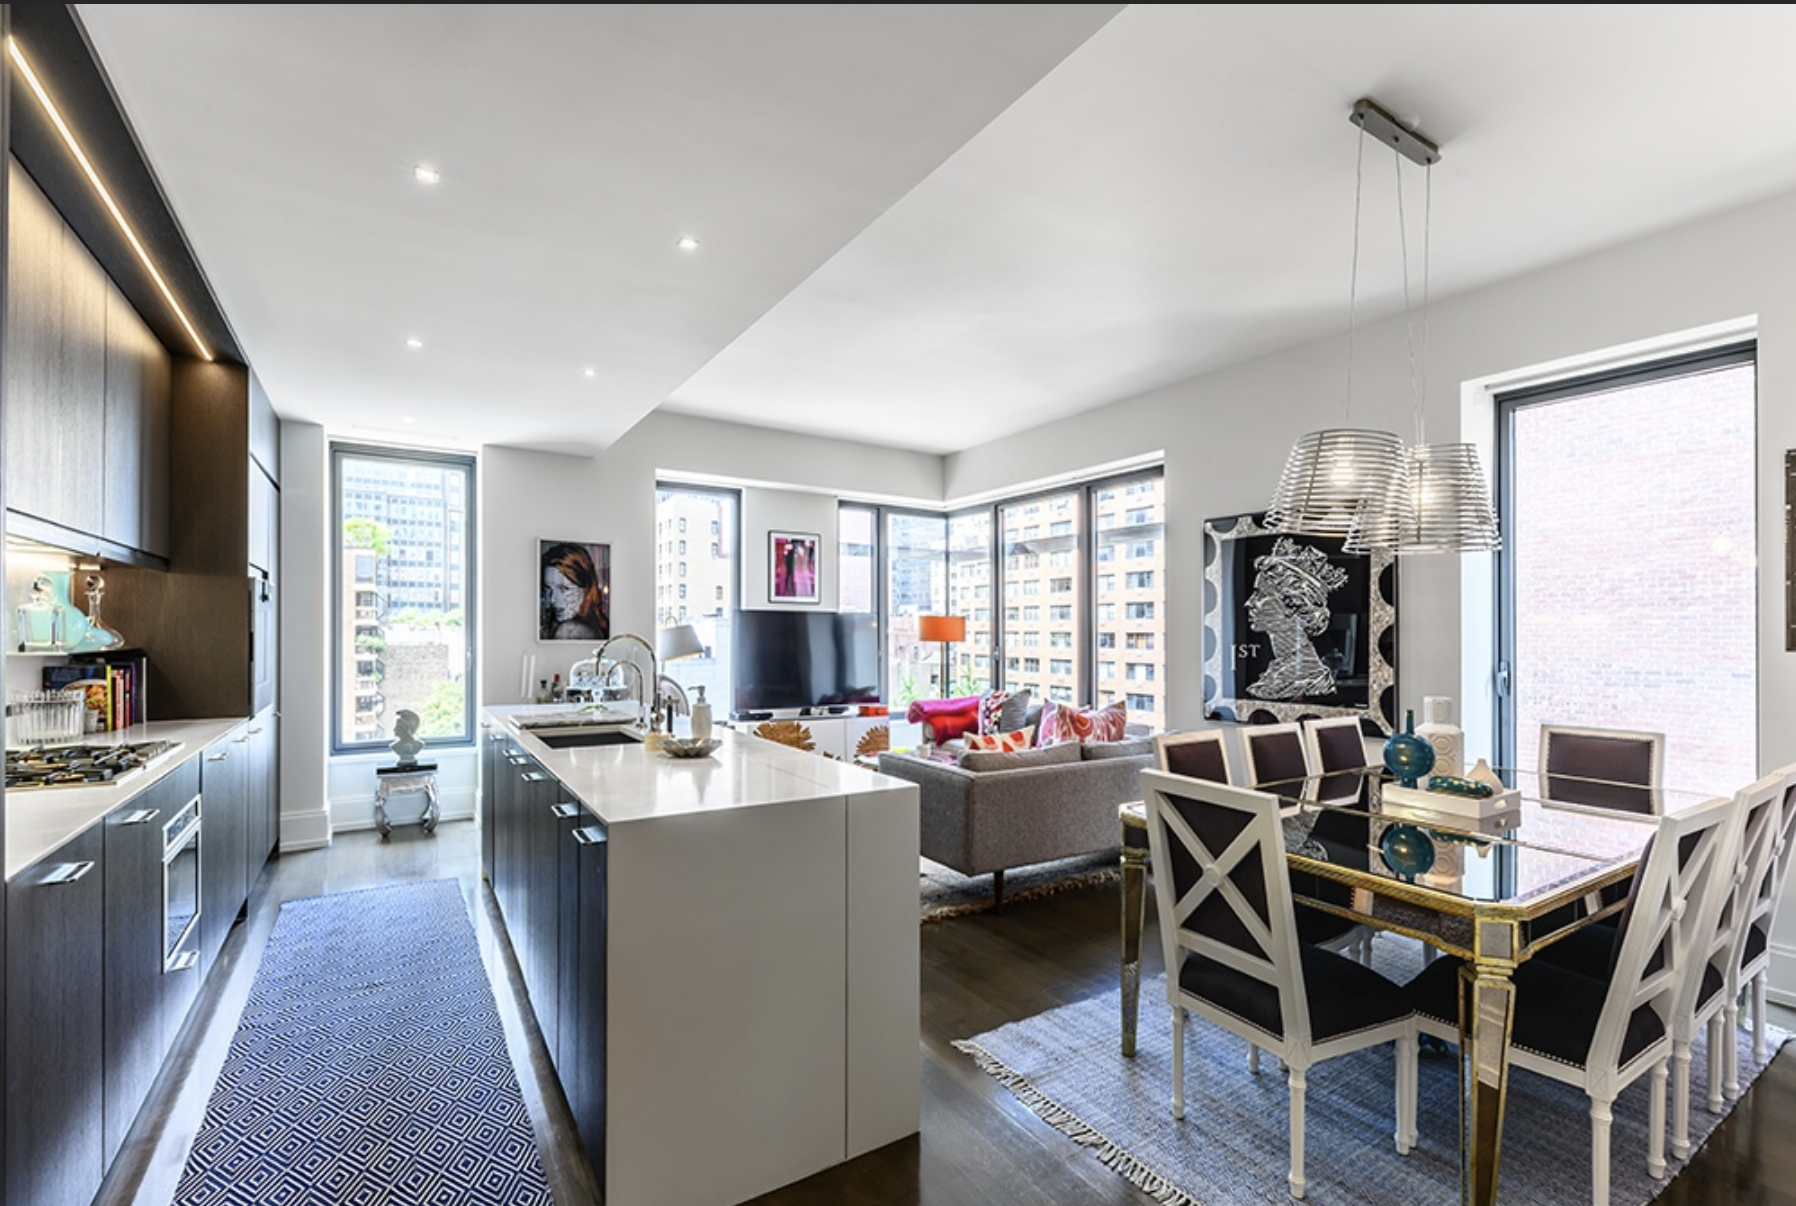 301 EAST 50TH STREET, 6C - $2,499,000 // 2 Beds // 2.5 Baths // 1,459 SQFTA beautifully-designed Turtle Bay condo graced with elegant finishes and an abundance of natural light, this home is a portrait of modern city luxury. Features of this 1,459 sq. ft. apartment include gorgeous wide plank oak flooring, airy 10-ft ceilings, huge soundproof Low-E windows with motorized shades, a multi-zone heating and cooling system, northern, western, and eastern exposure, and a side-by-side washer/dryer from Bosch.